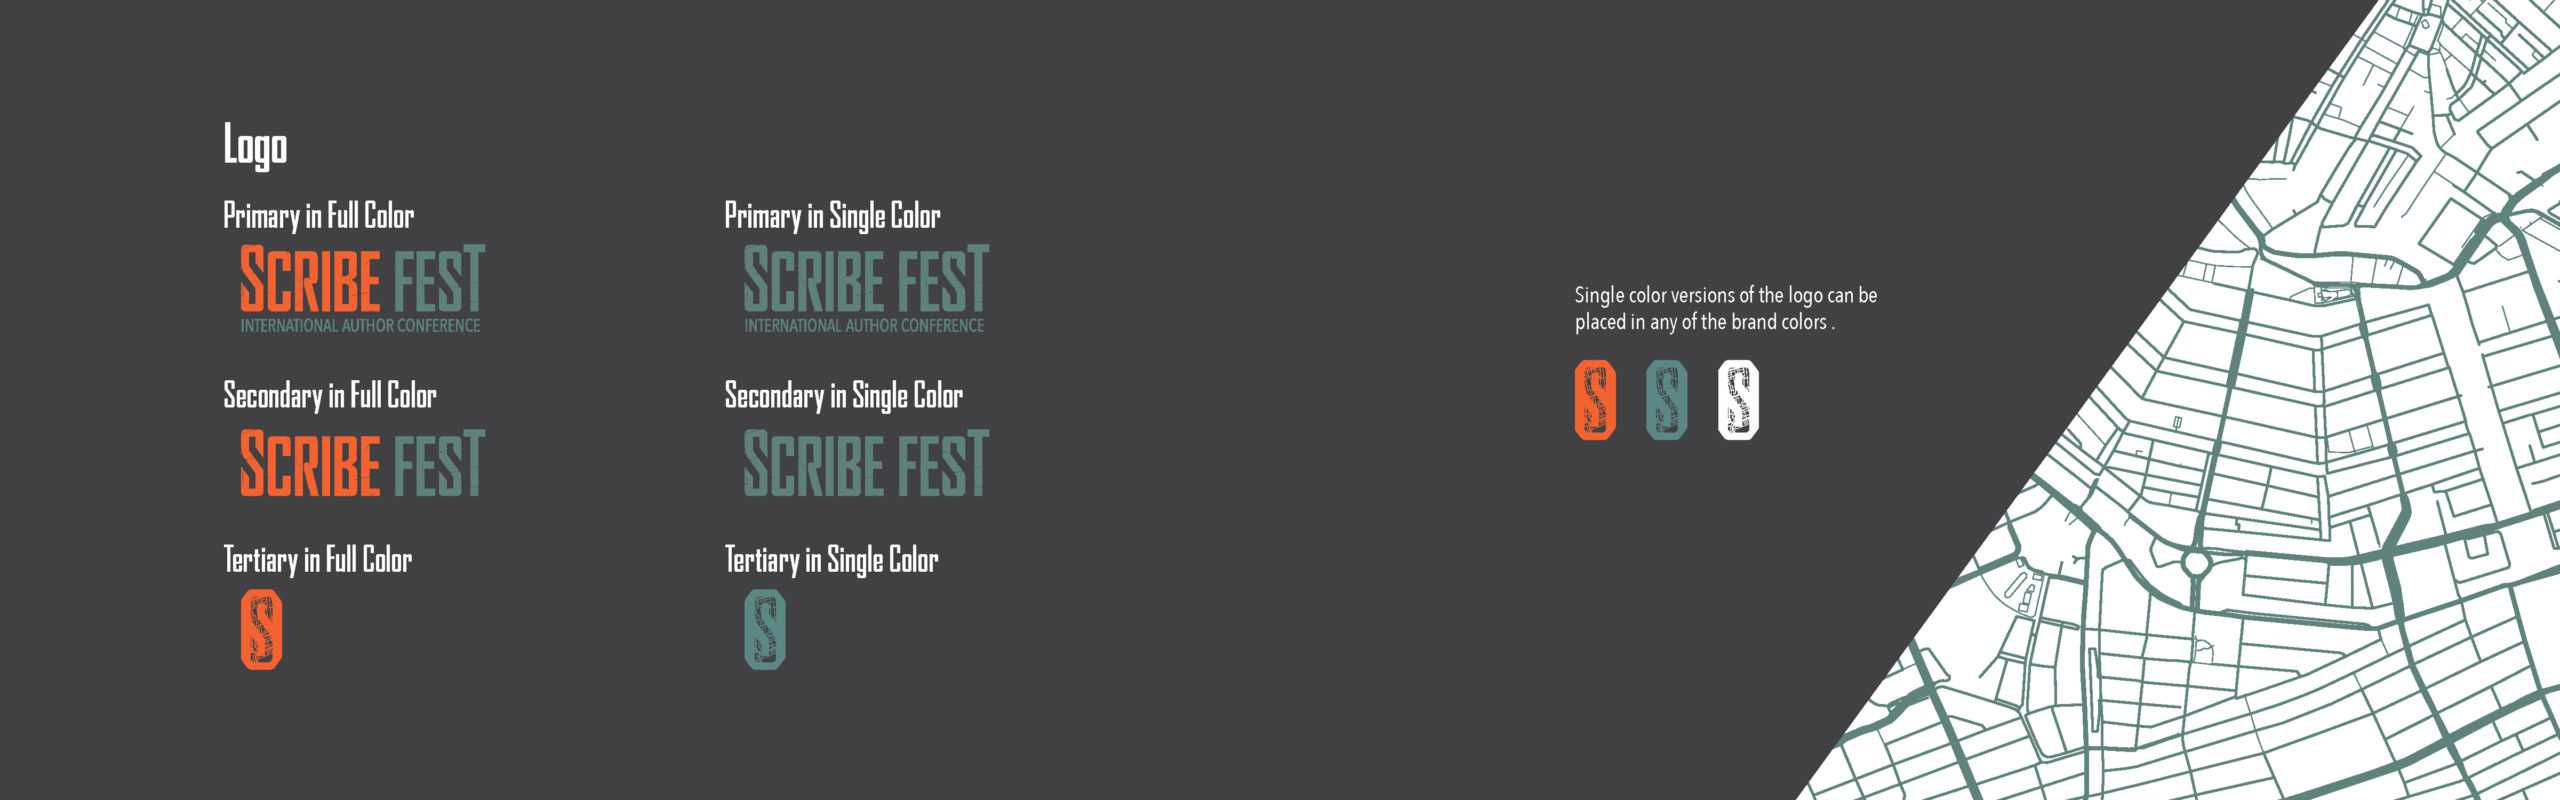 Scribe Fest Style Guide3